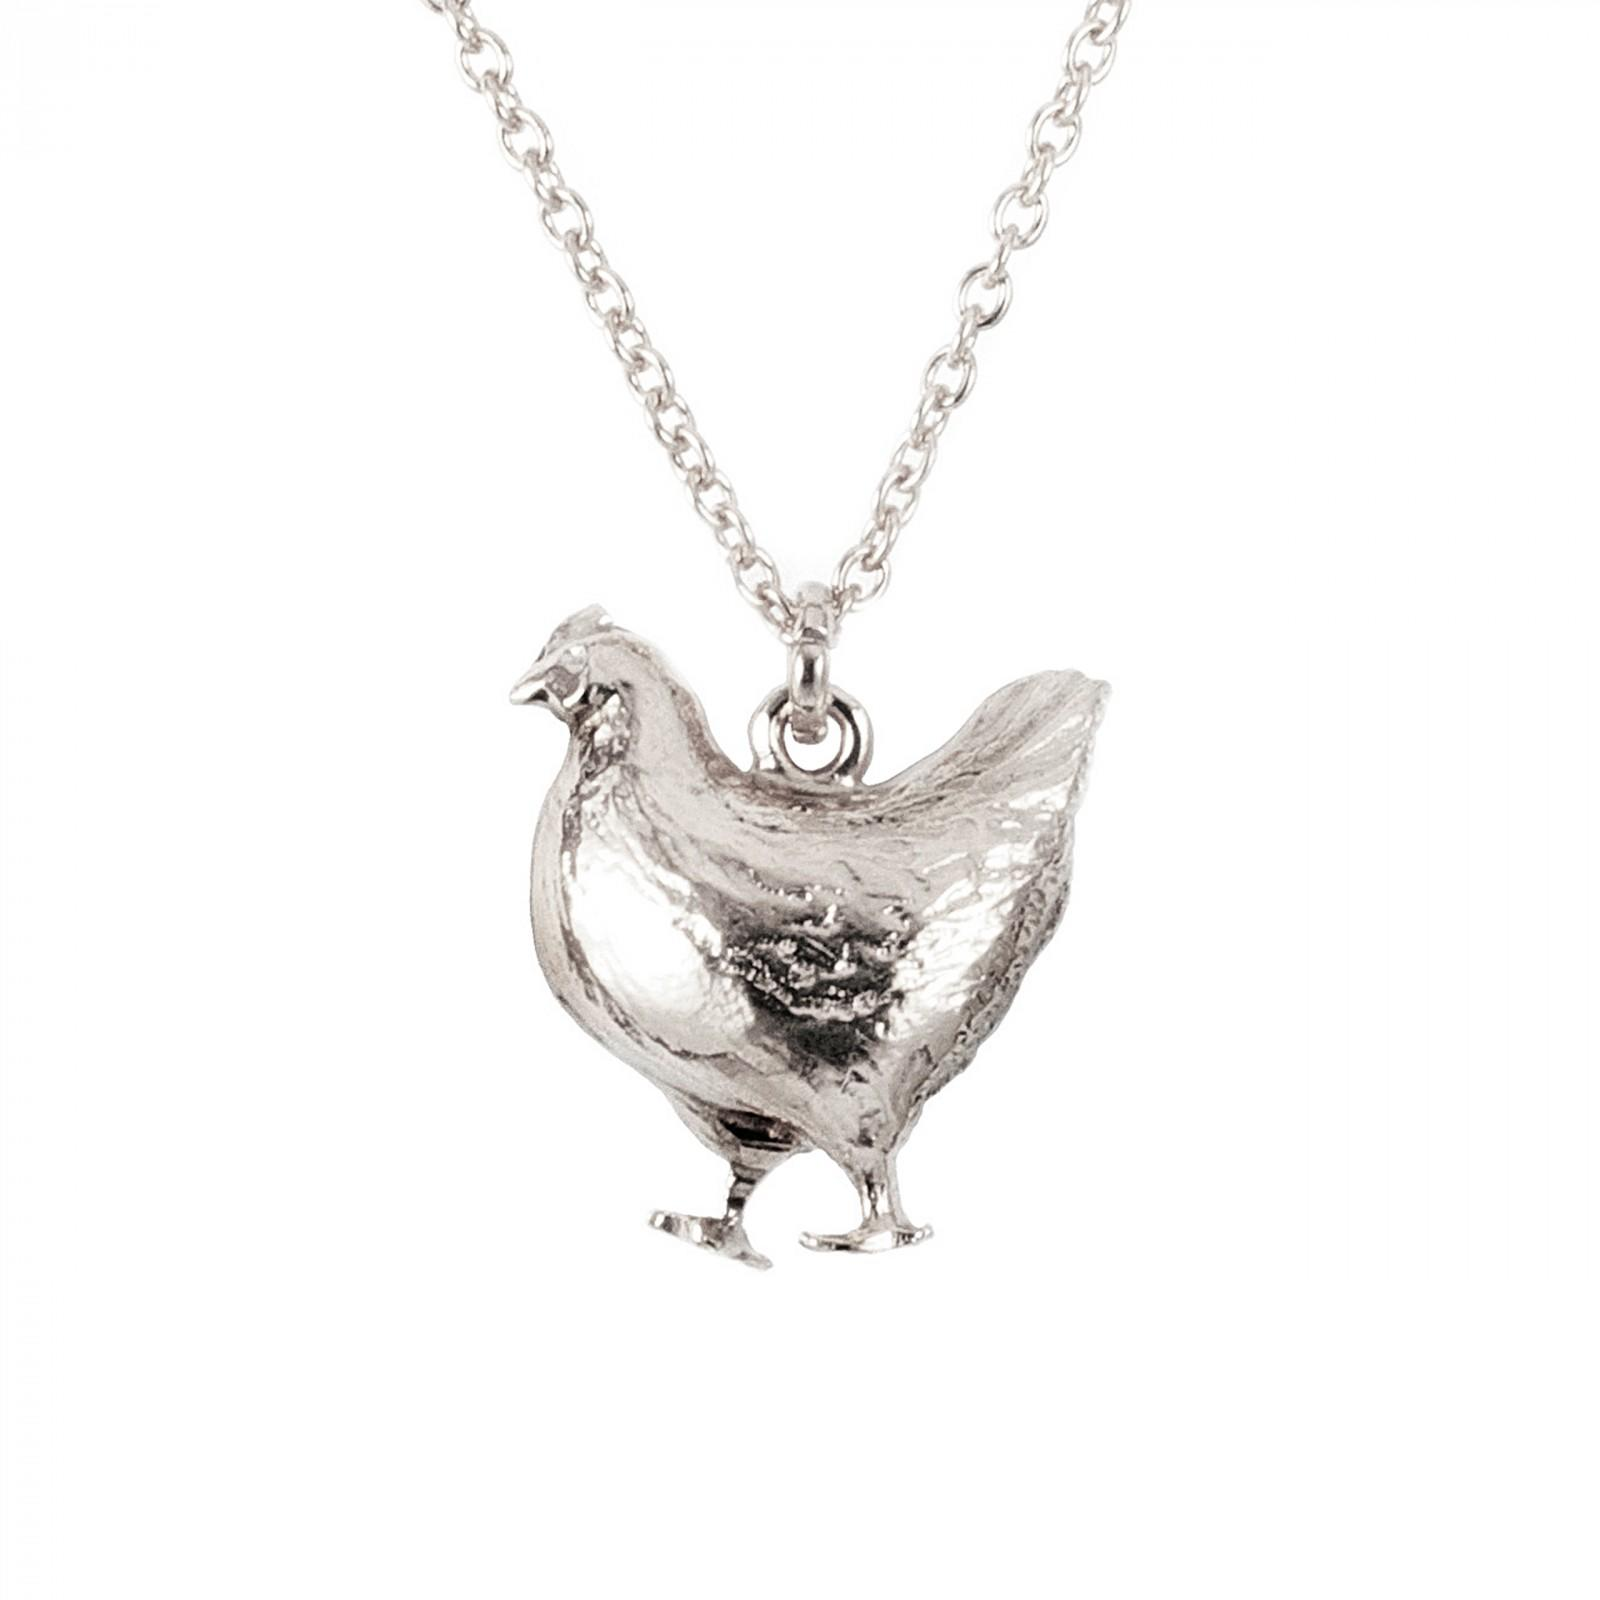 Sterling silver fat hen necklace £132 silver bumblebee necklace Large £150, Small £132 (available in store only)